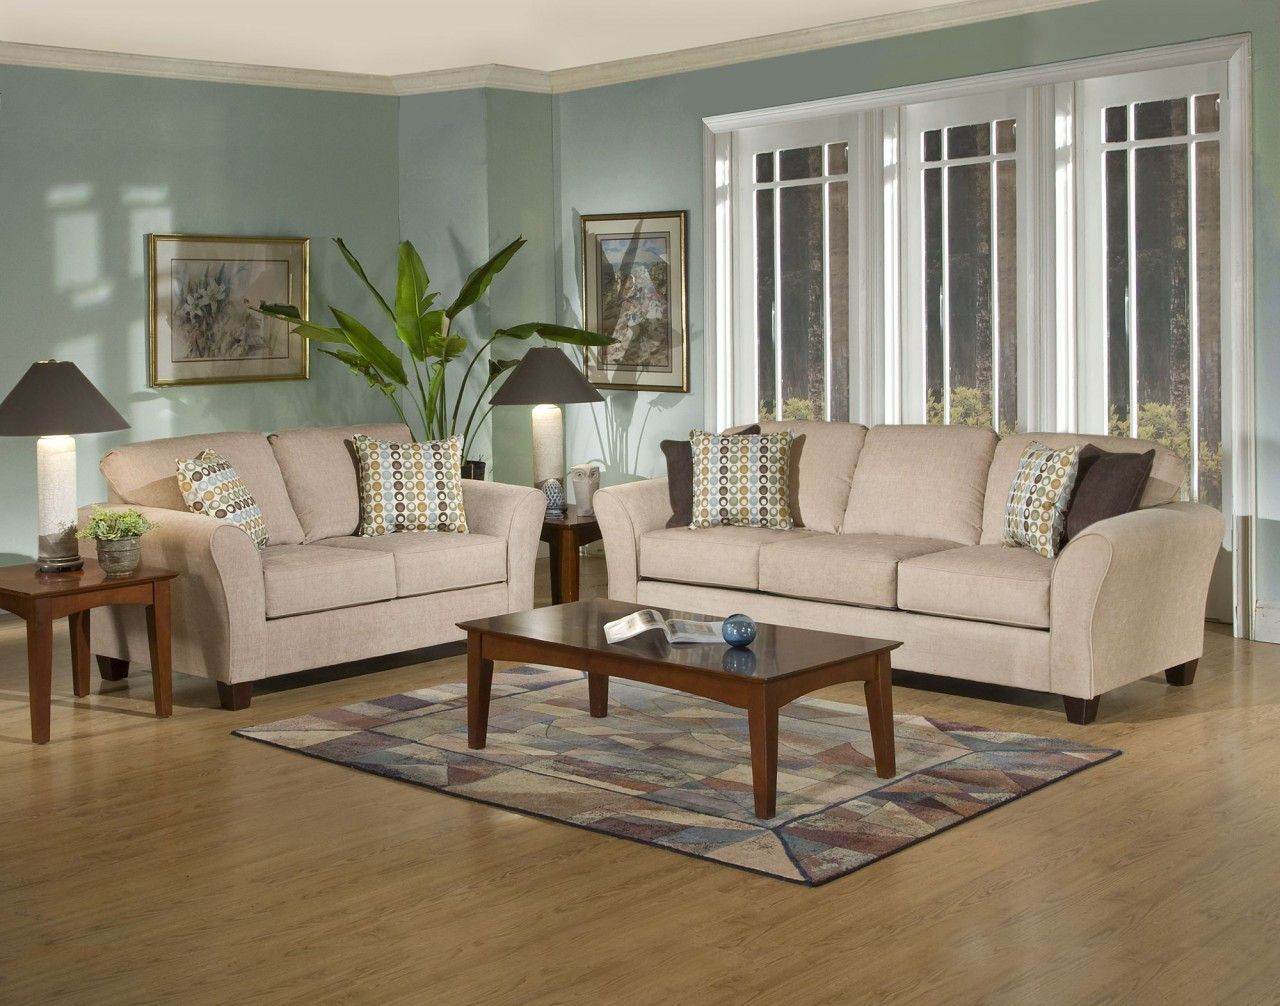 Serta upholstery 4650 viewpoint tan sofa loveseat living room triad furniture distributors 1